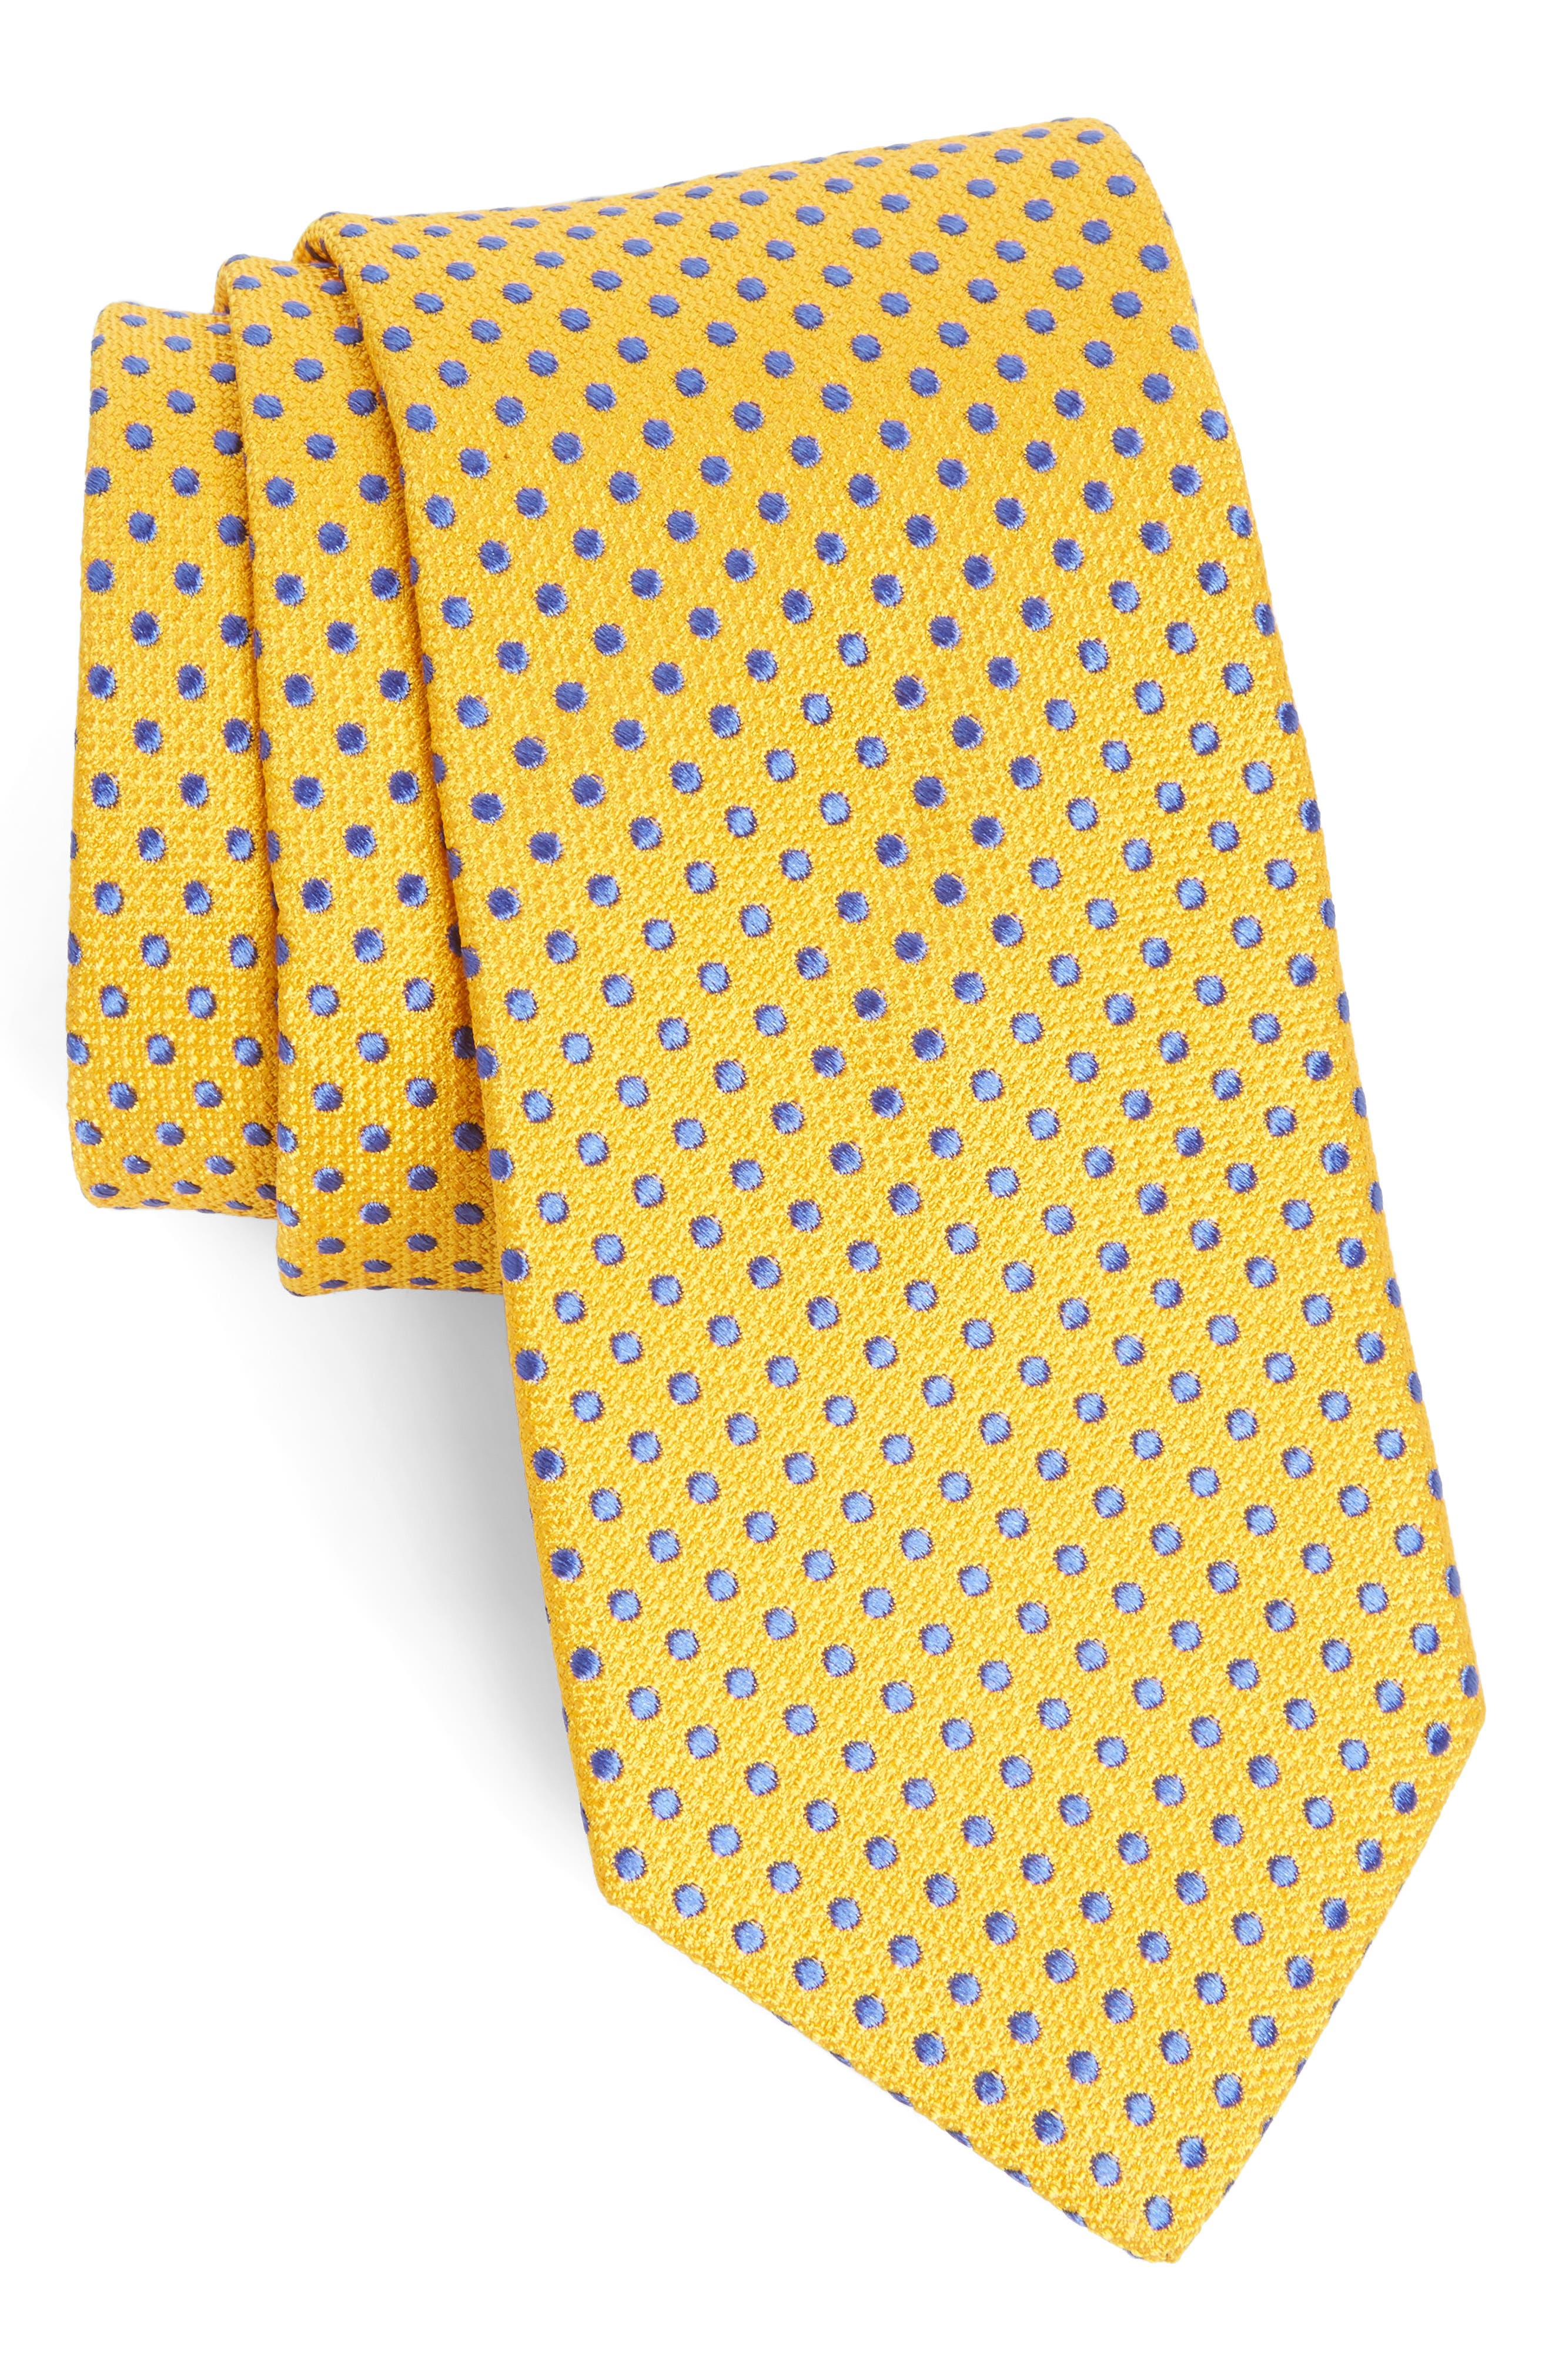 Alternate Image 1 Selected - Ted Baker London Small Dot Silk Tie